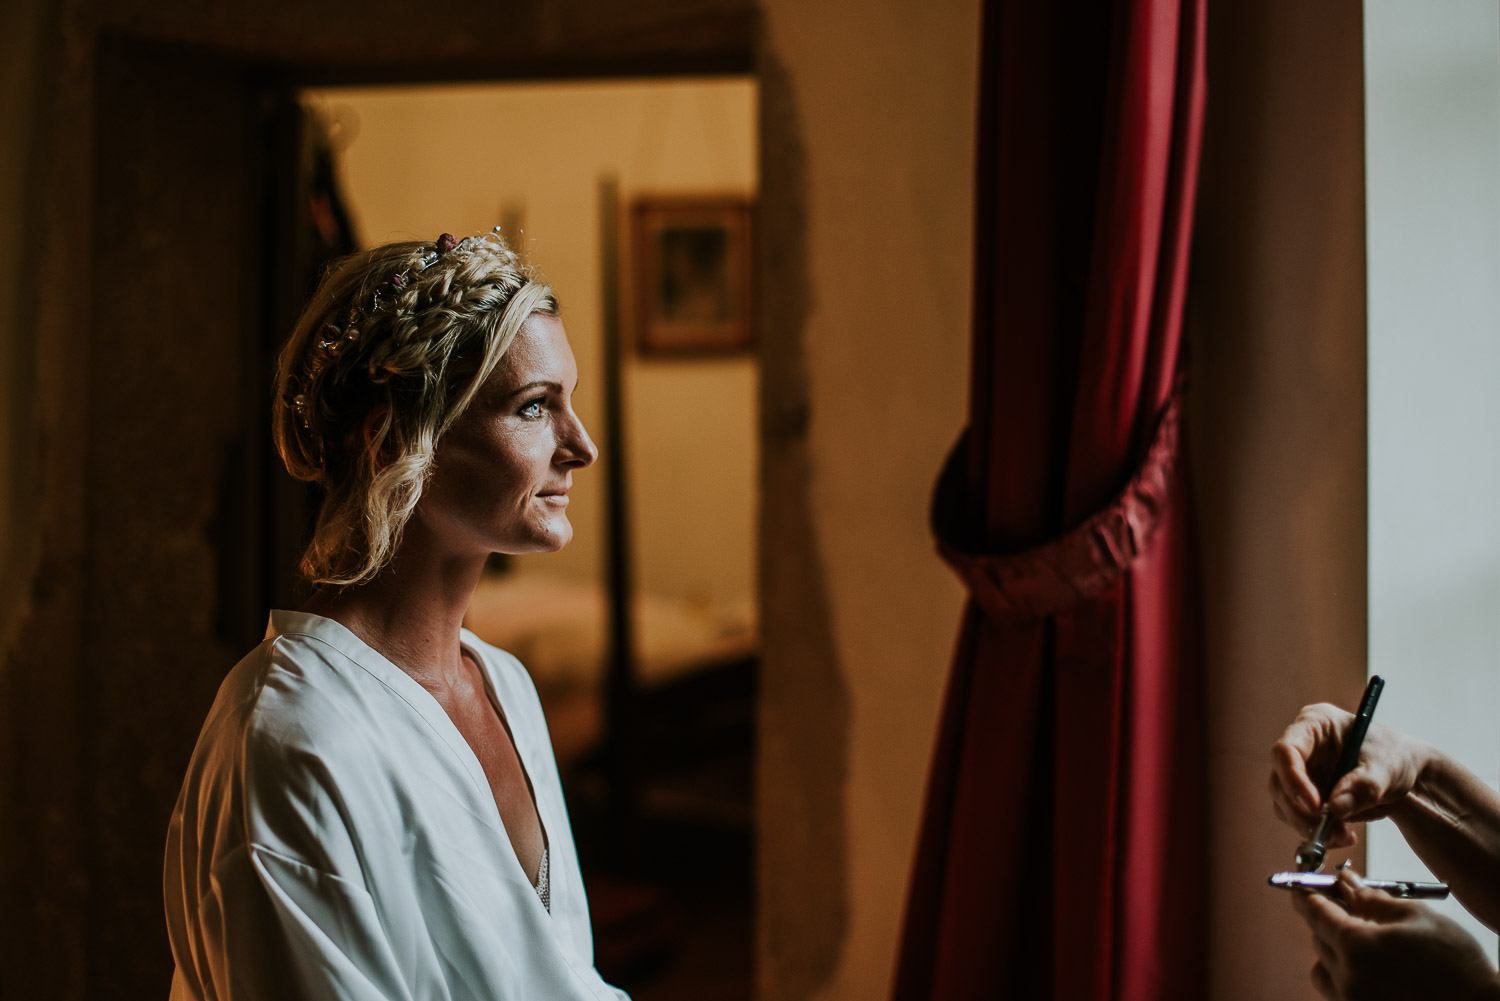 chateau_la_commanderie_mirepoix__wedding_katy_webb_photography_france_UK38